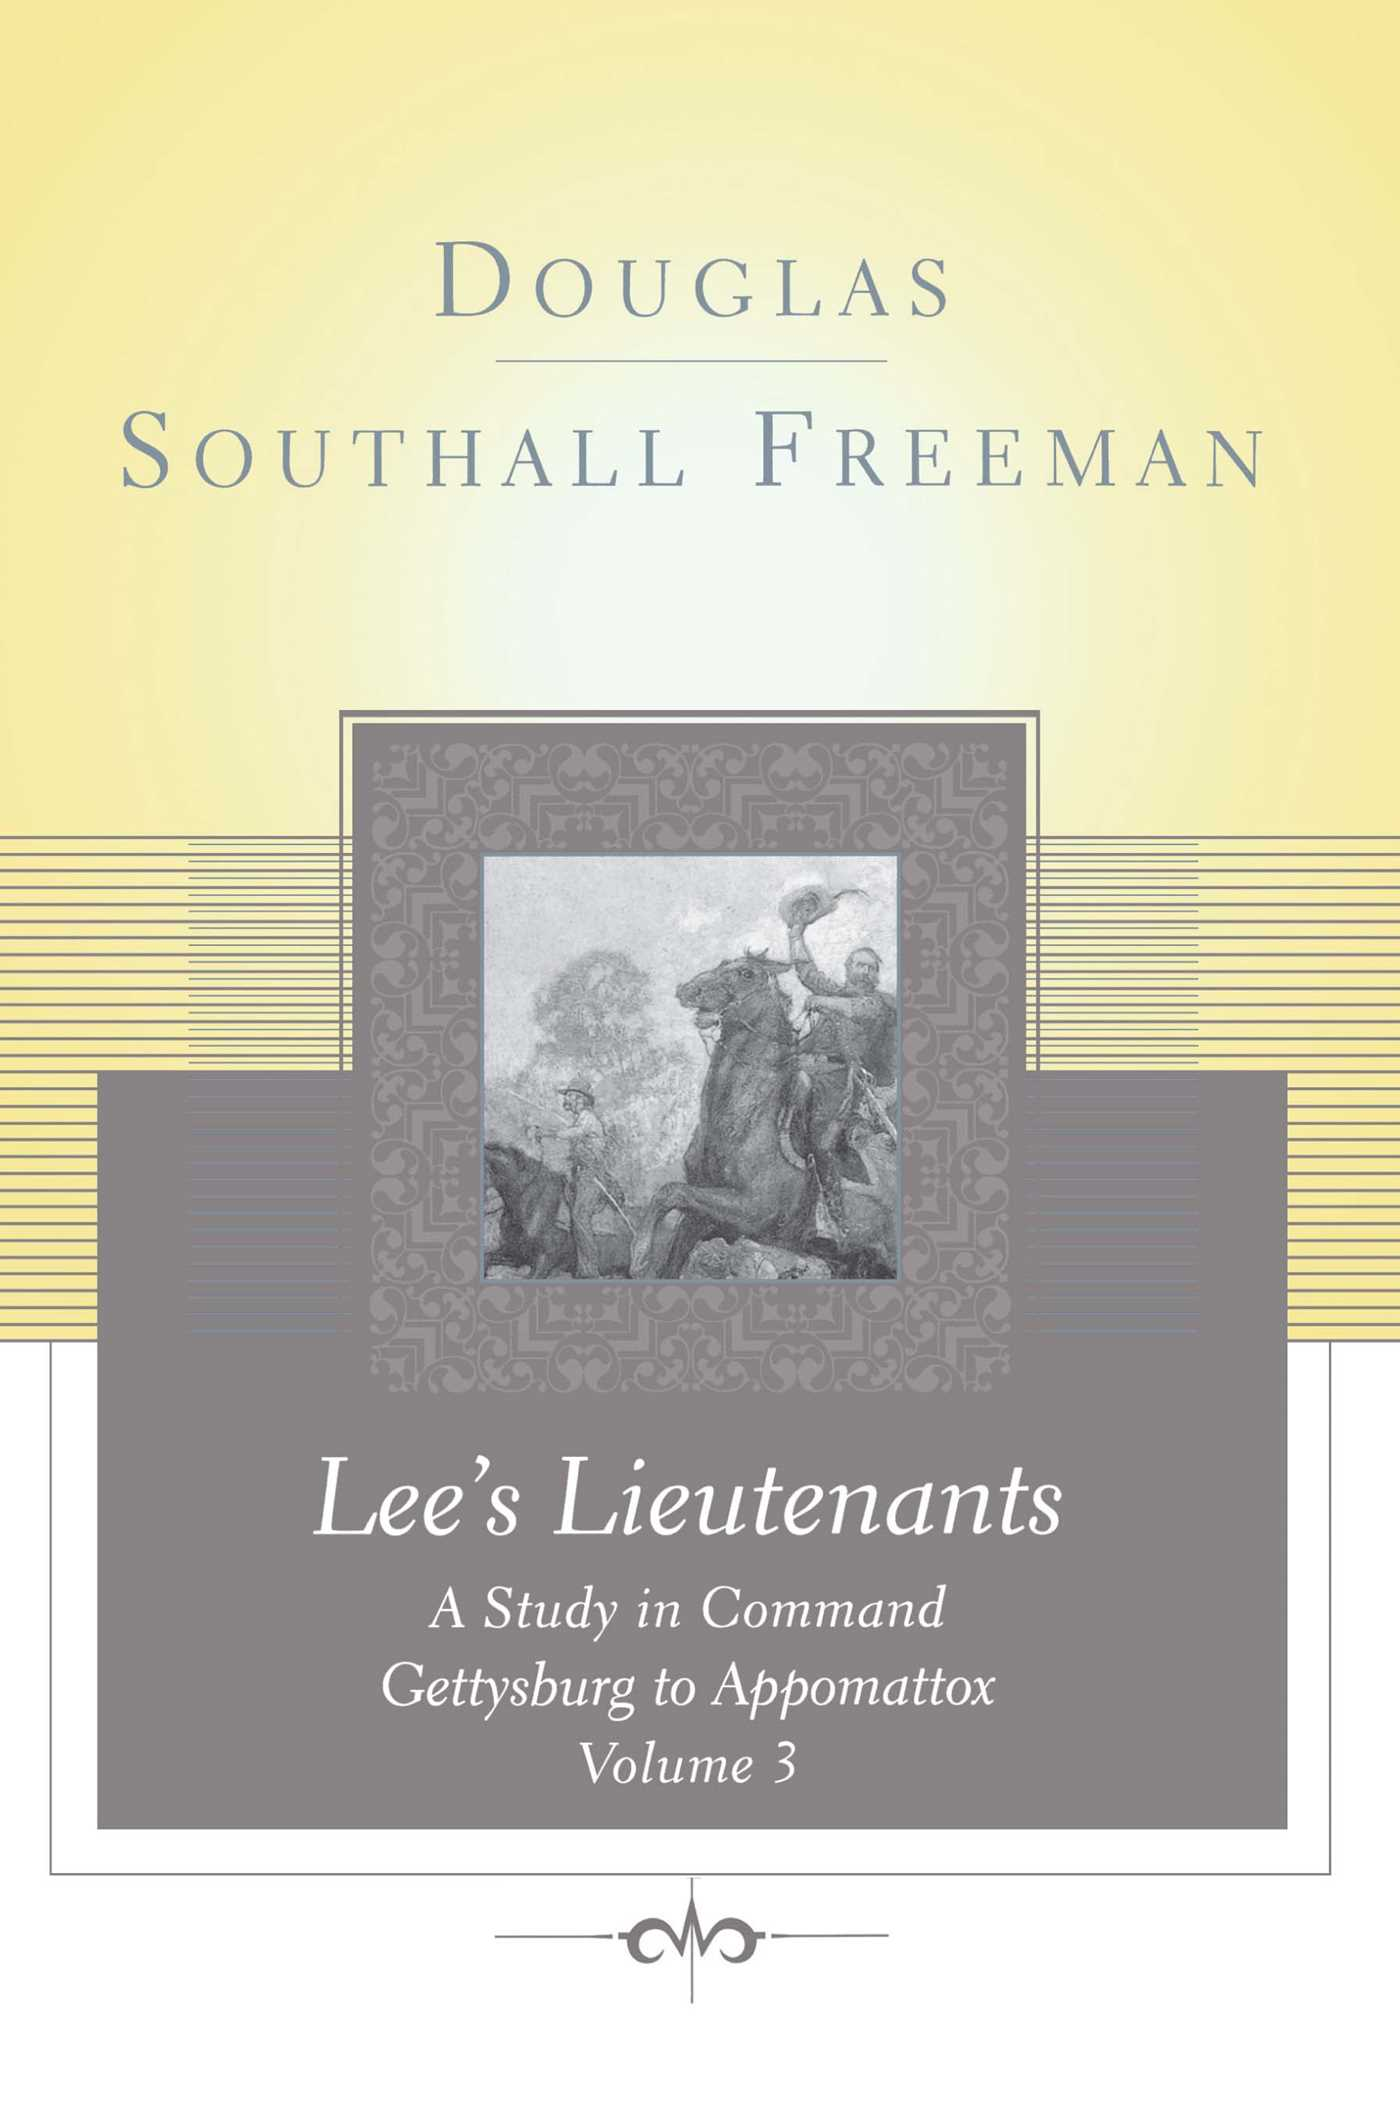 Lees lieutenants volume 3 9781451627343 hr